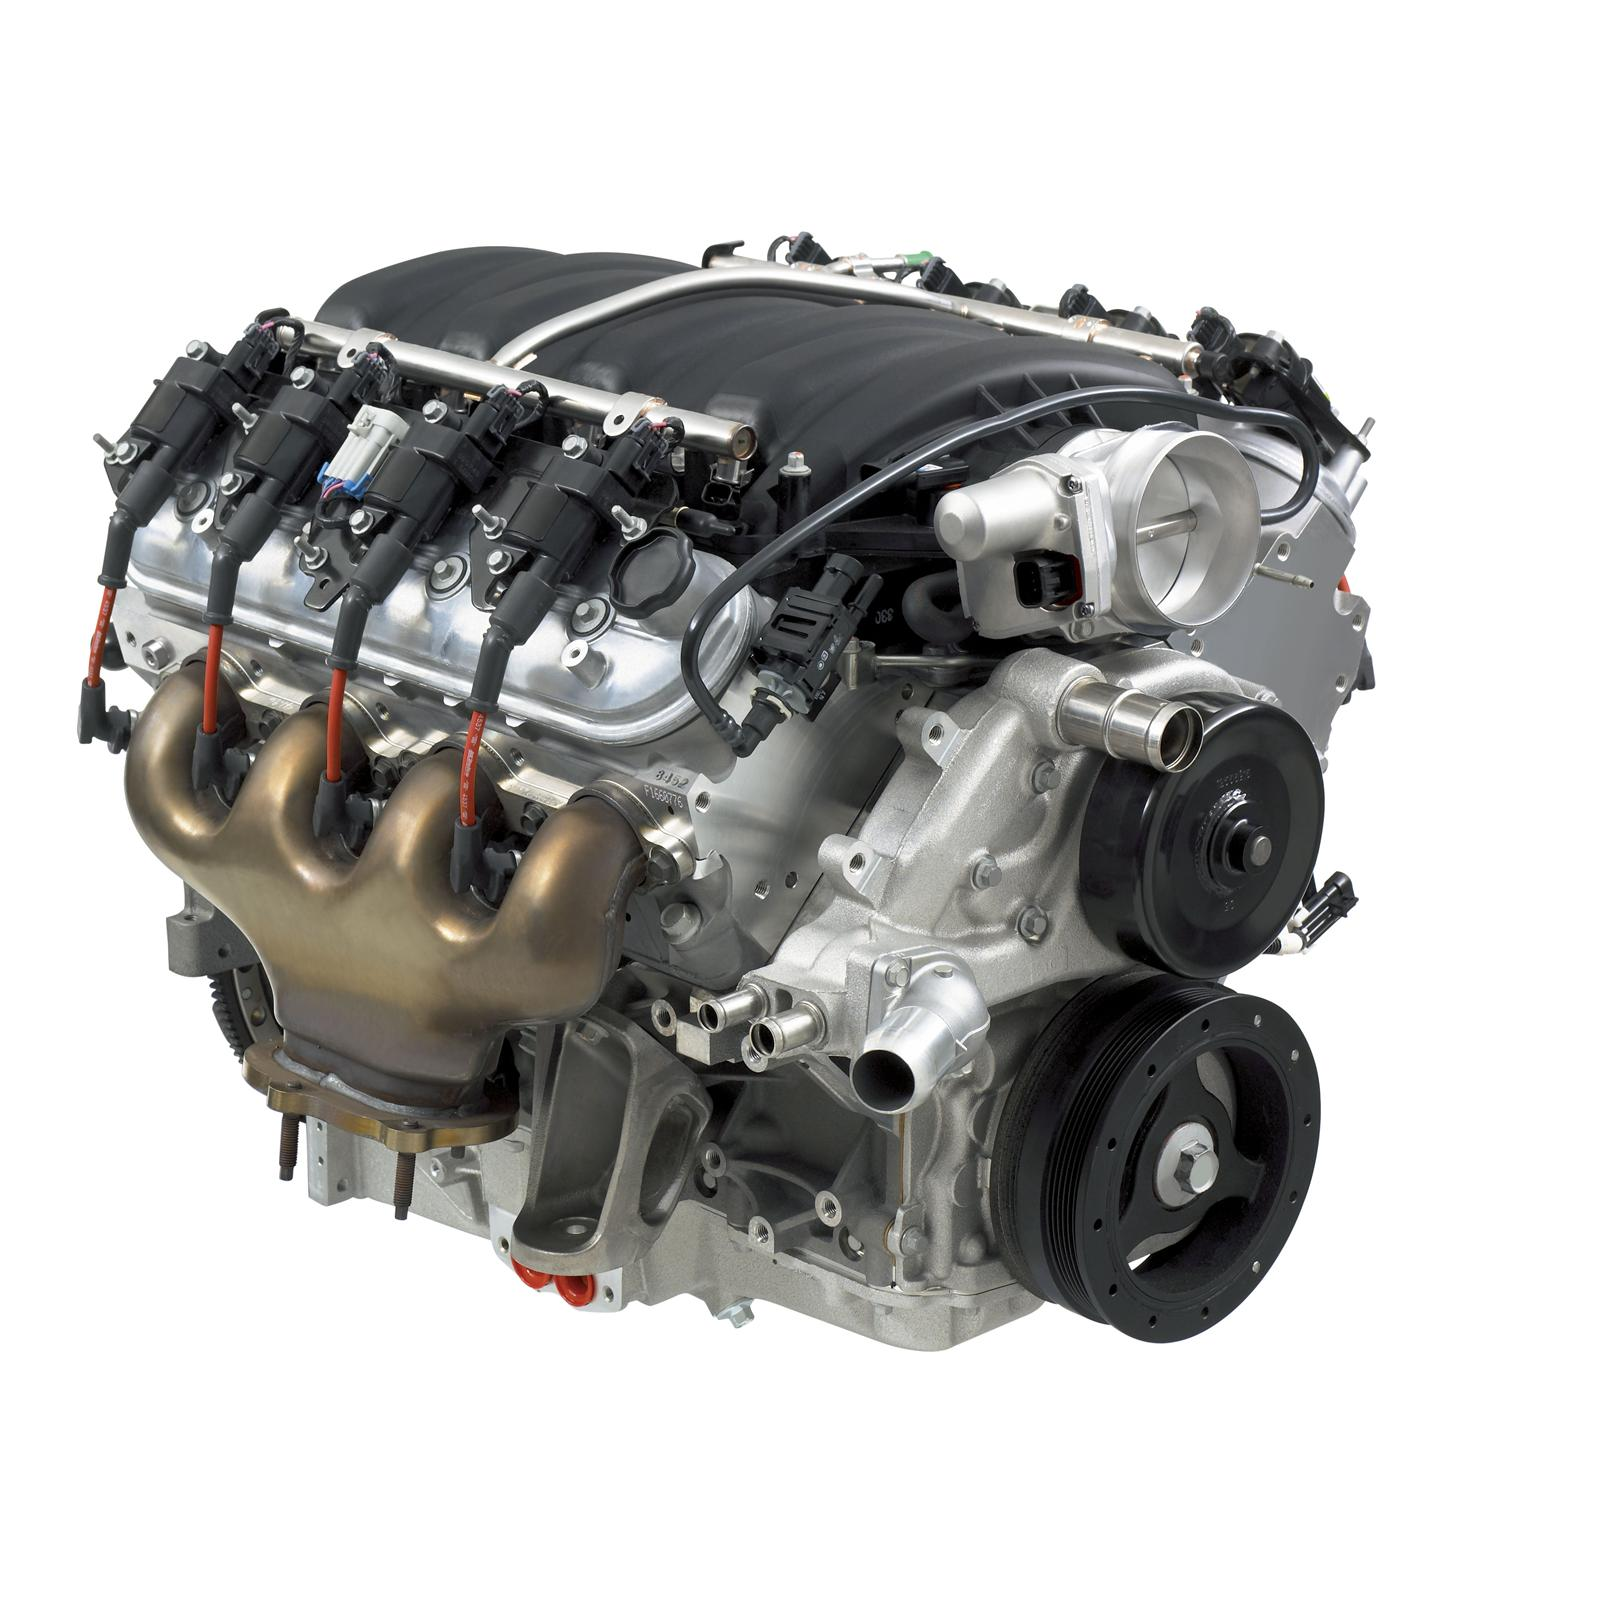 chevrolet performance ls7 7 0l crate engines 19244098 chevrolet performance ls7 7 0l crate engines 19244098 shipping on orders over 99 at summit racing